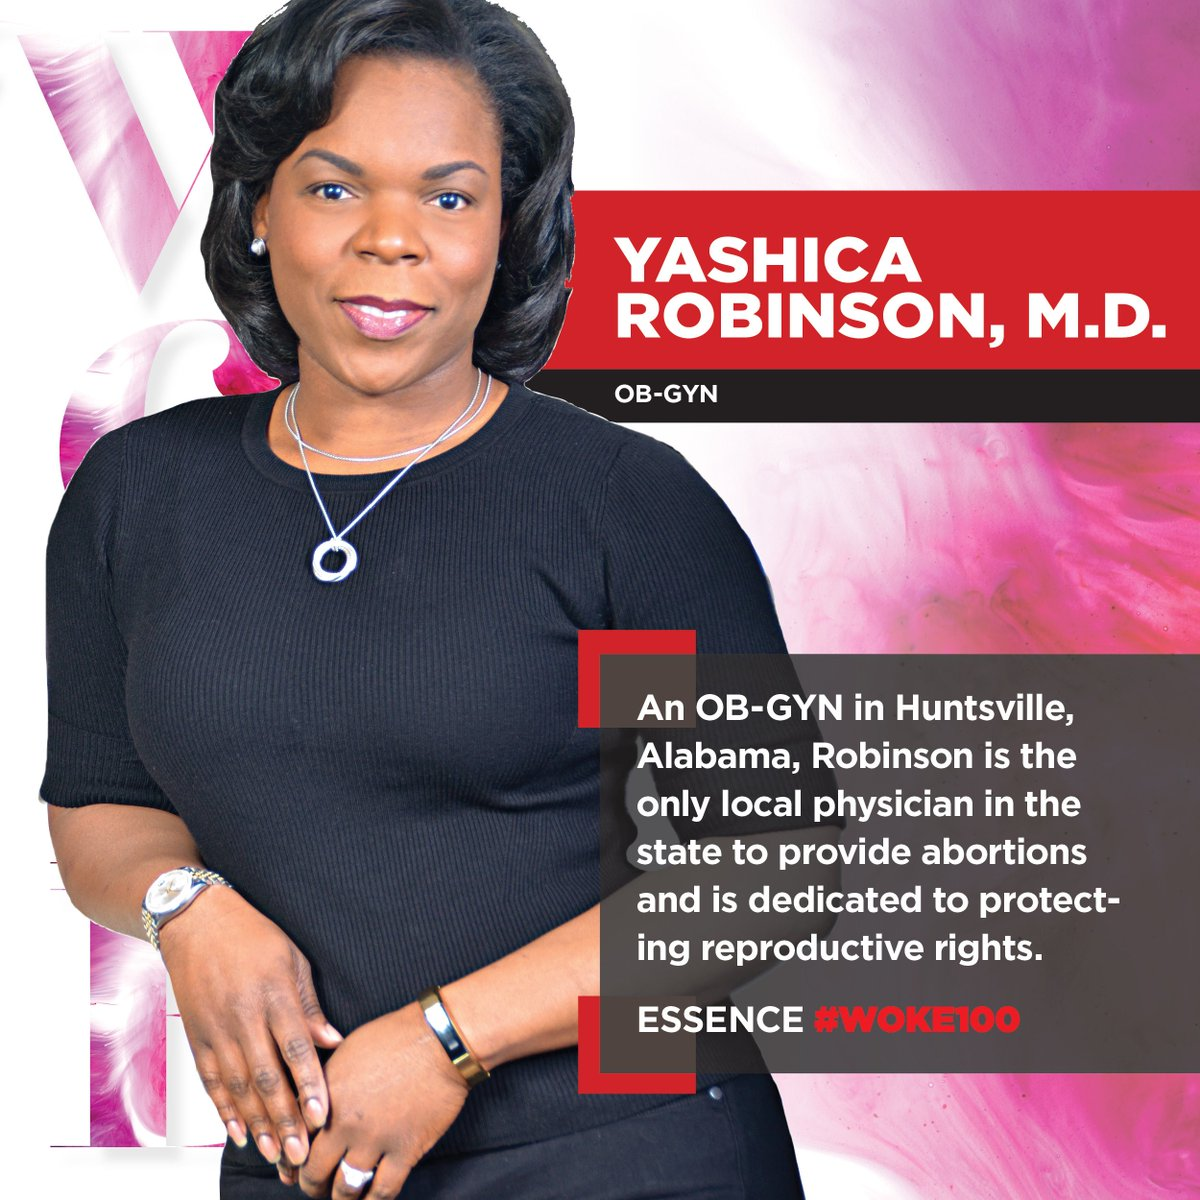 Yashica robinson : Latest News, Breaking News Headlines ...